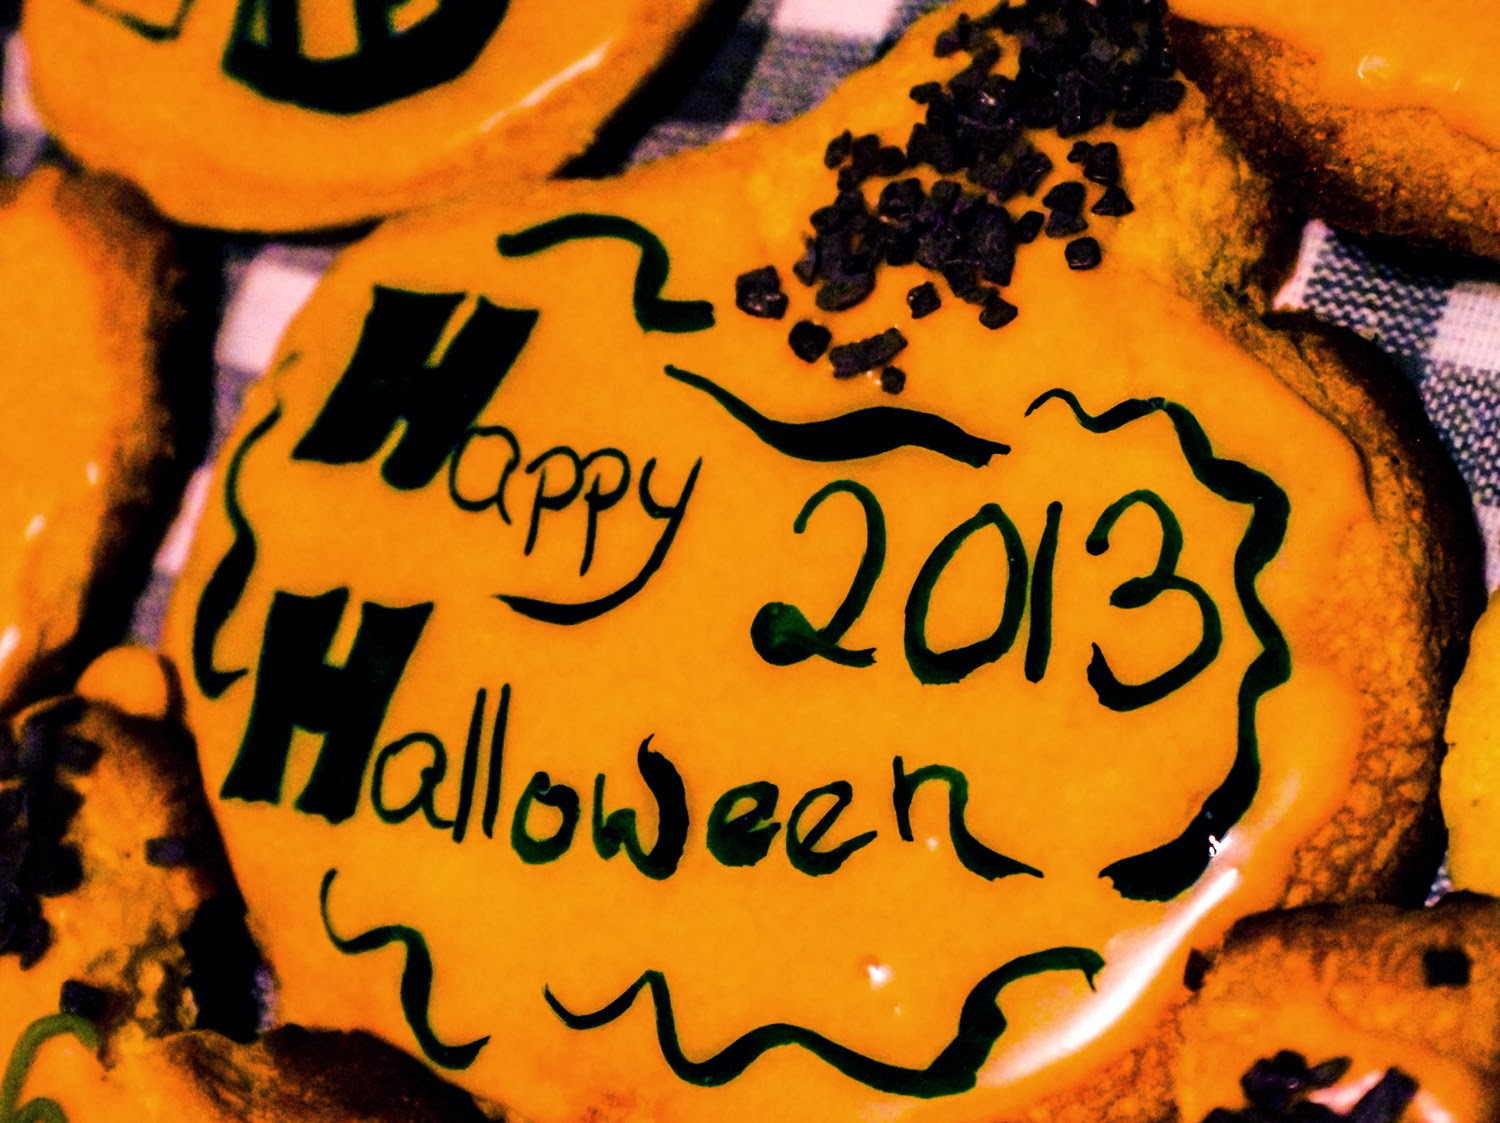 http://learnenglishkids.britishcouncil.org/en/category/topics/halloween